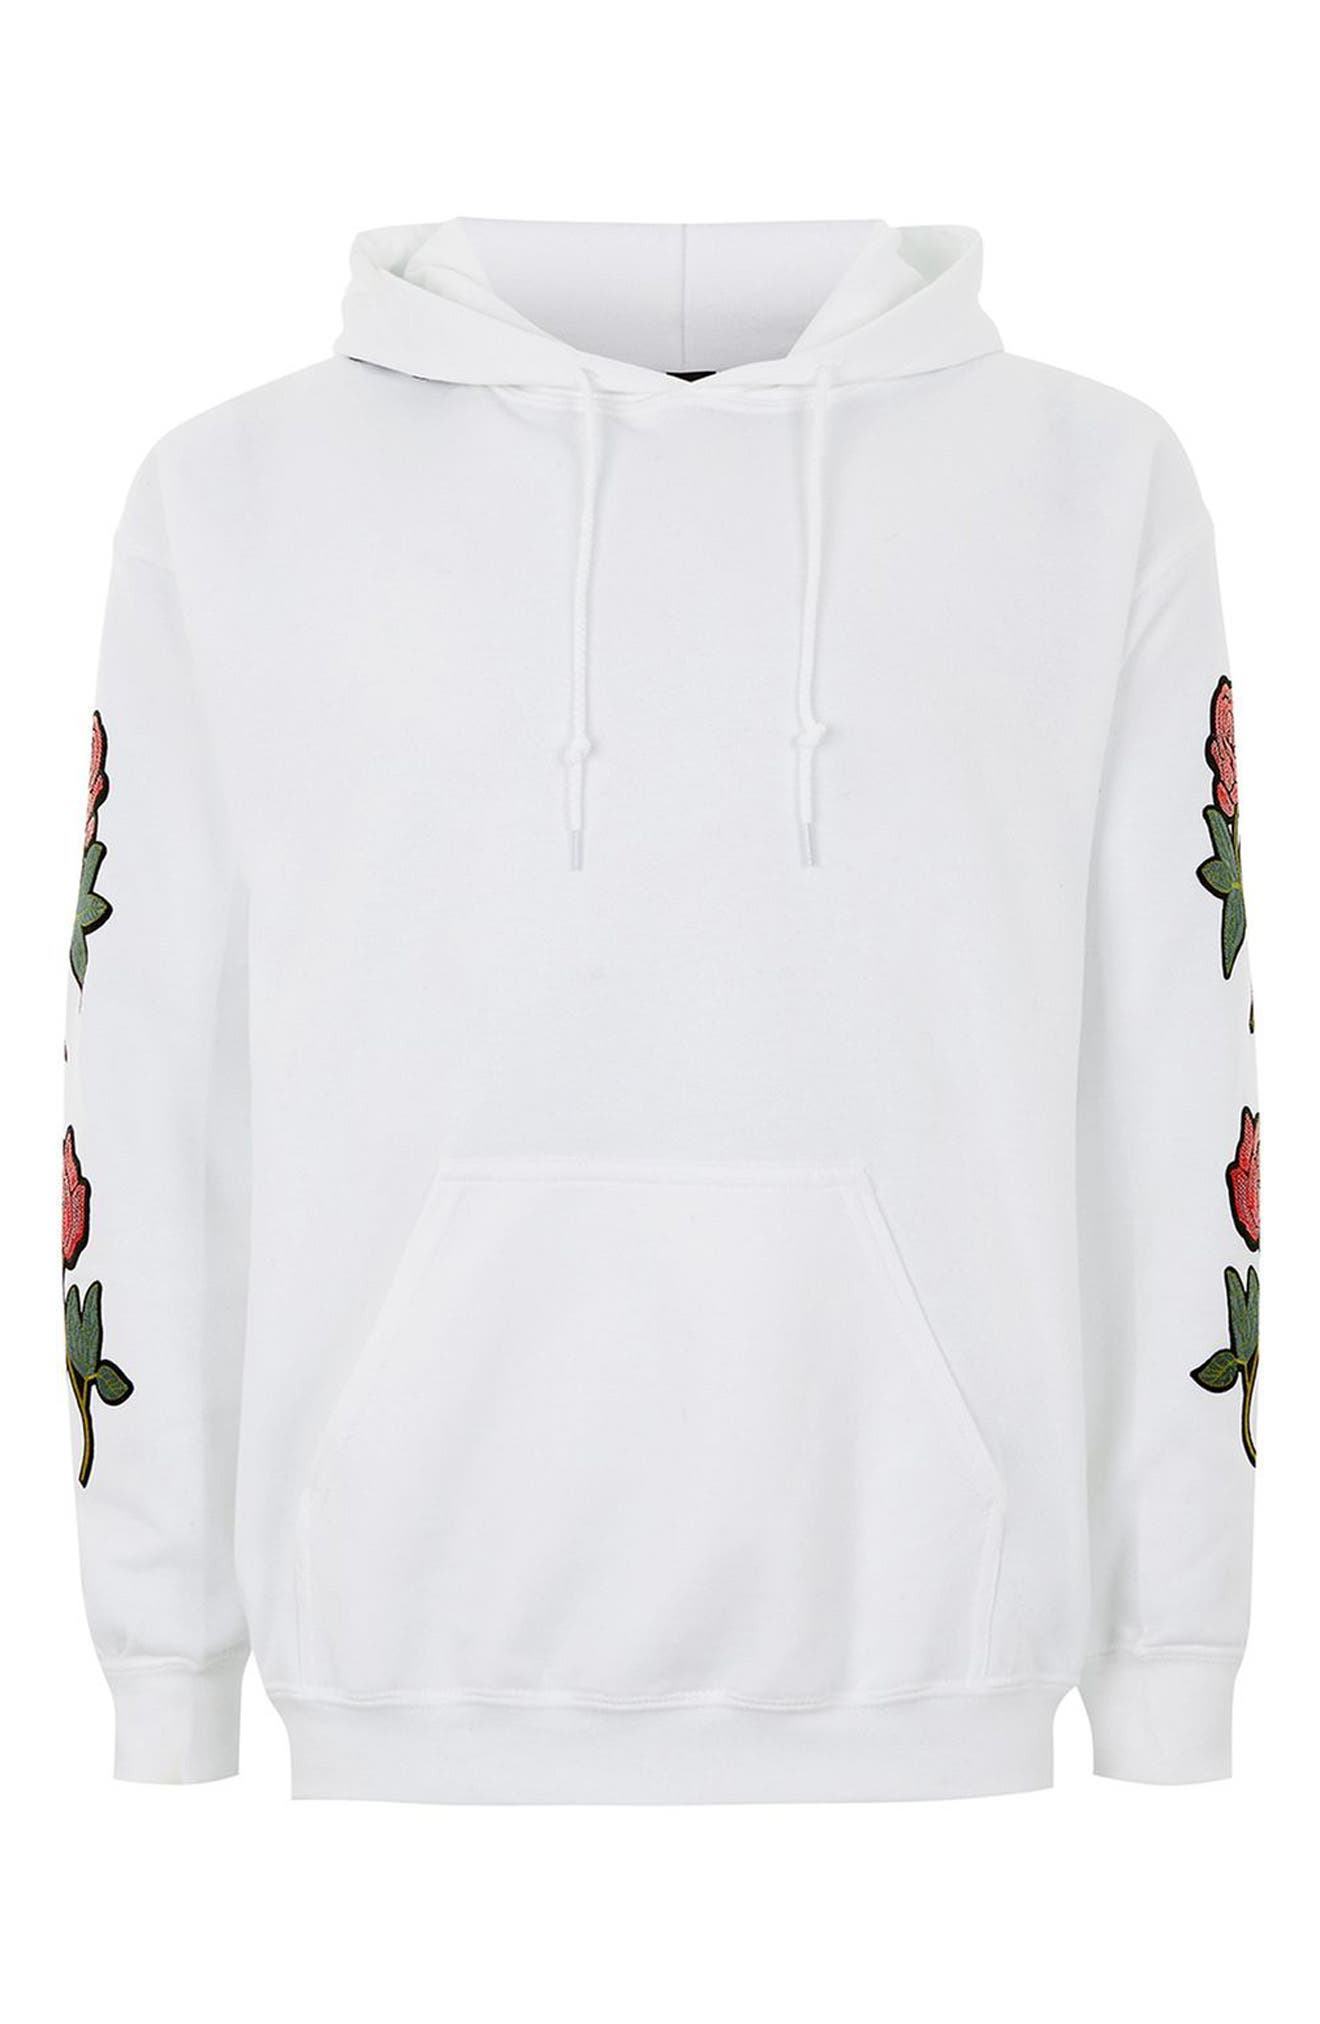 Embroidered Appliqué Hoodie,                             Alternate thumbnail 4, color,                             White Multi